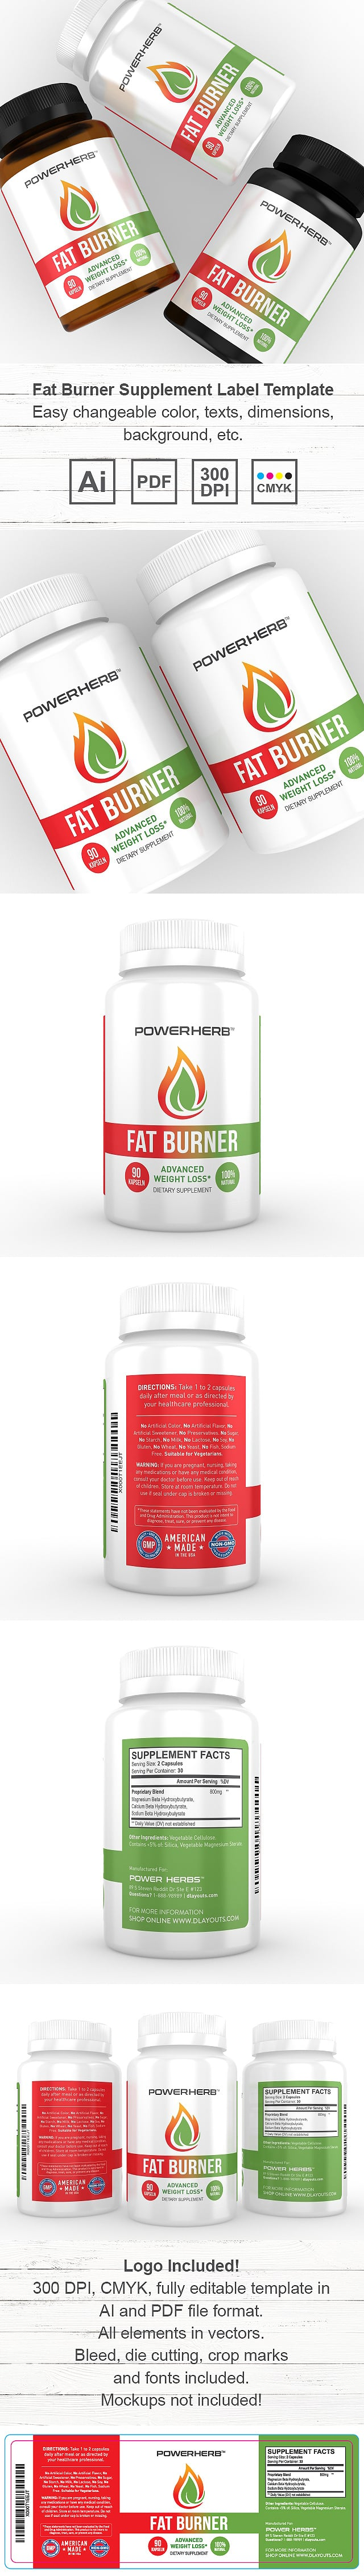 Fat Burner Supplement Label Template